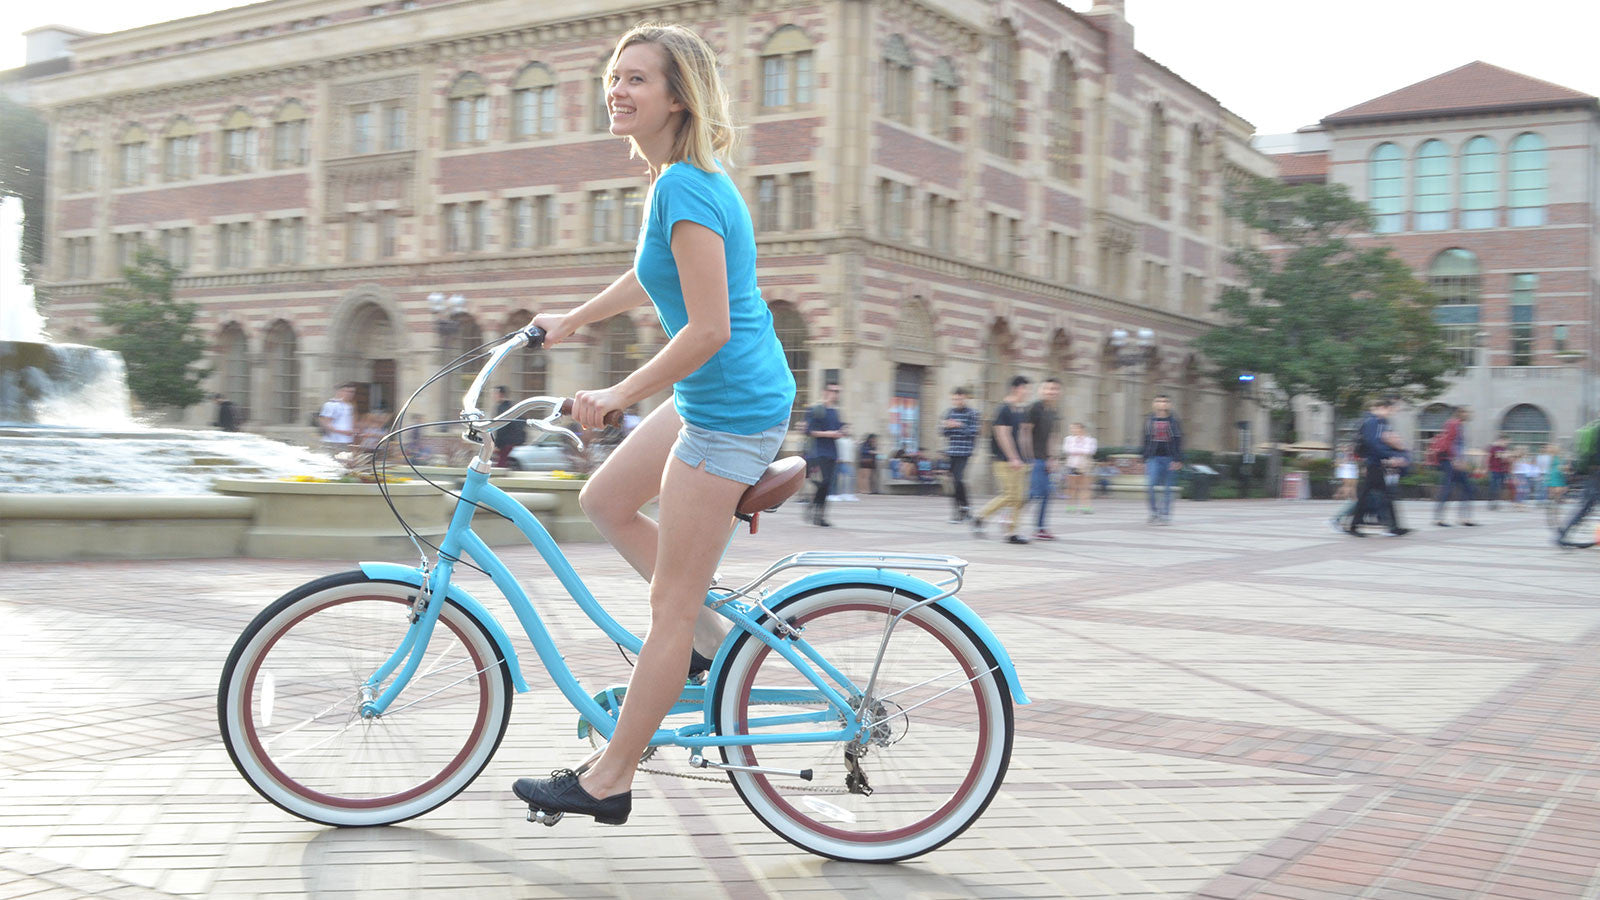 The Best Commuter Bicycles And Accessories For College Campus Riding